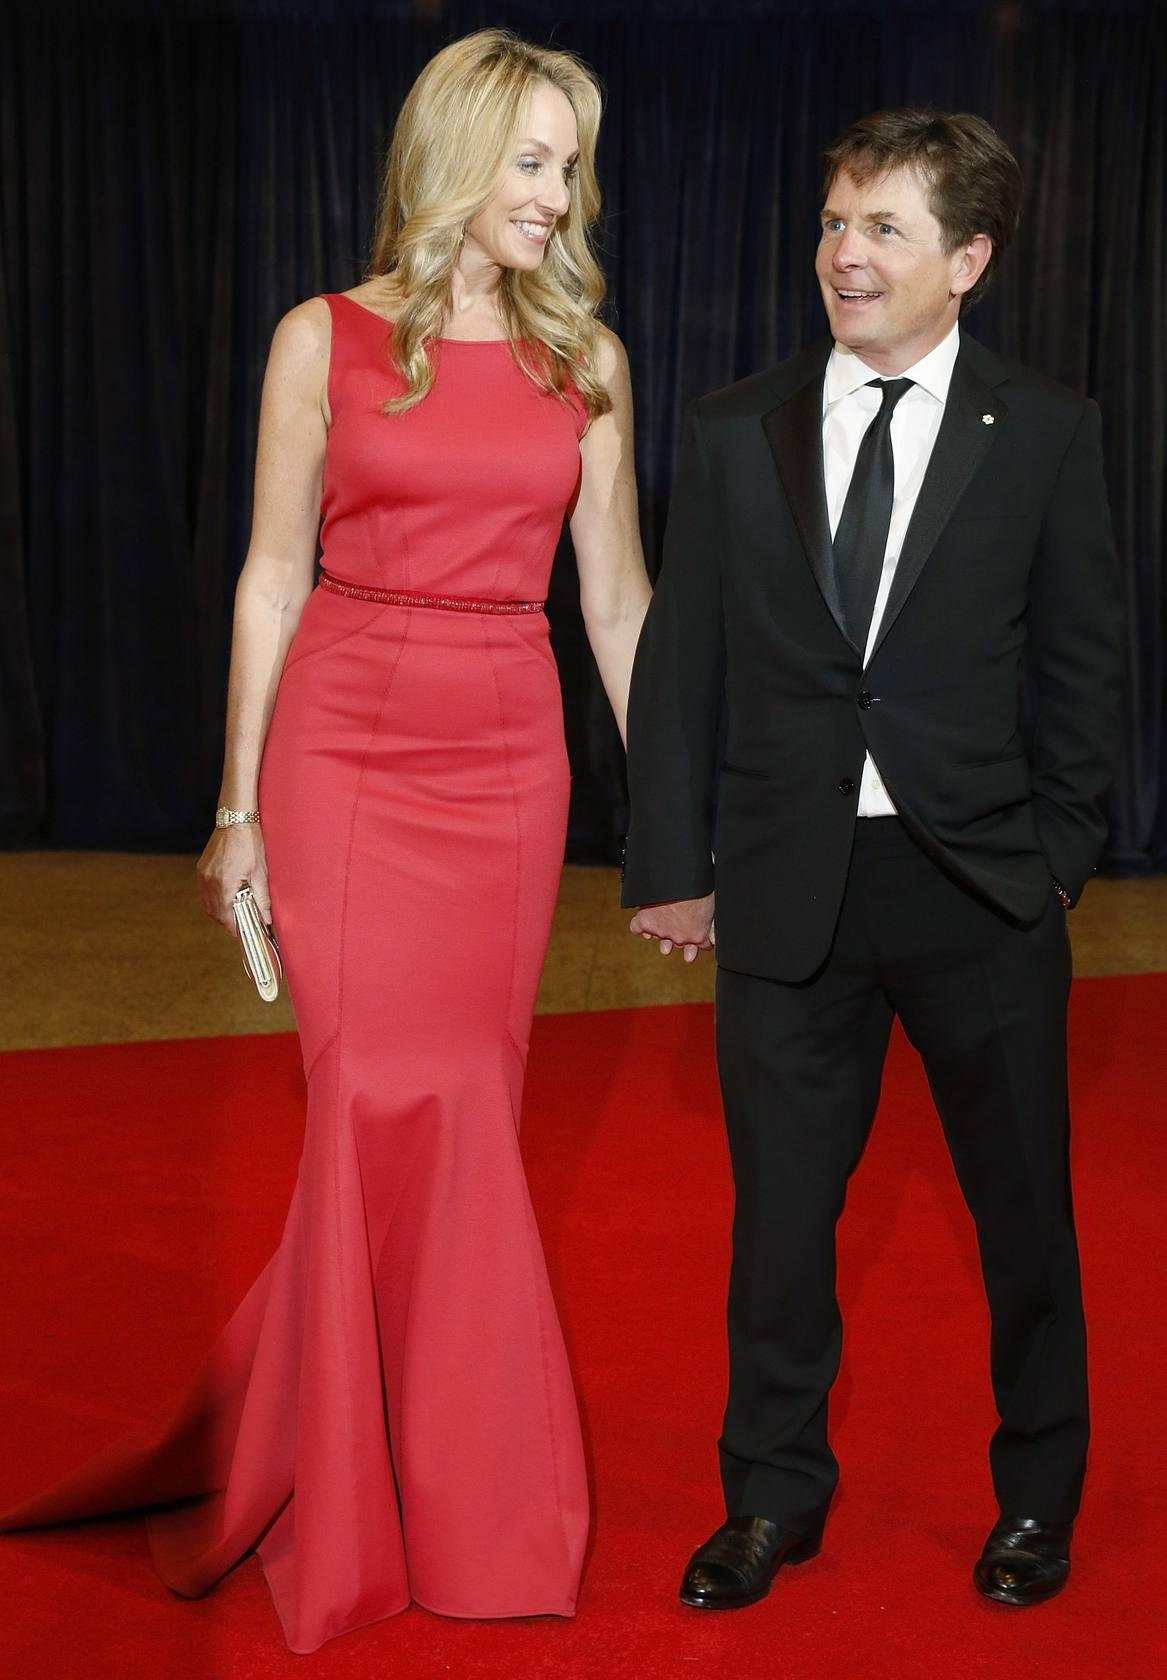 Alfombra roja de la 2013 White House Correspondents' Association Dinner